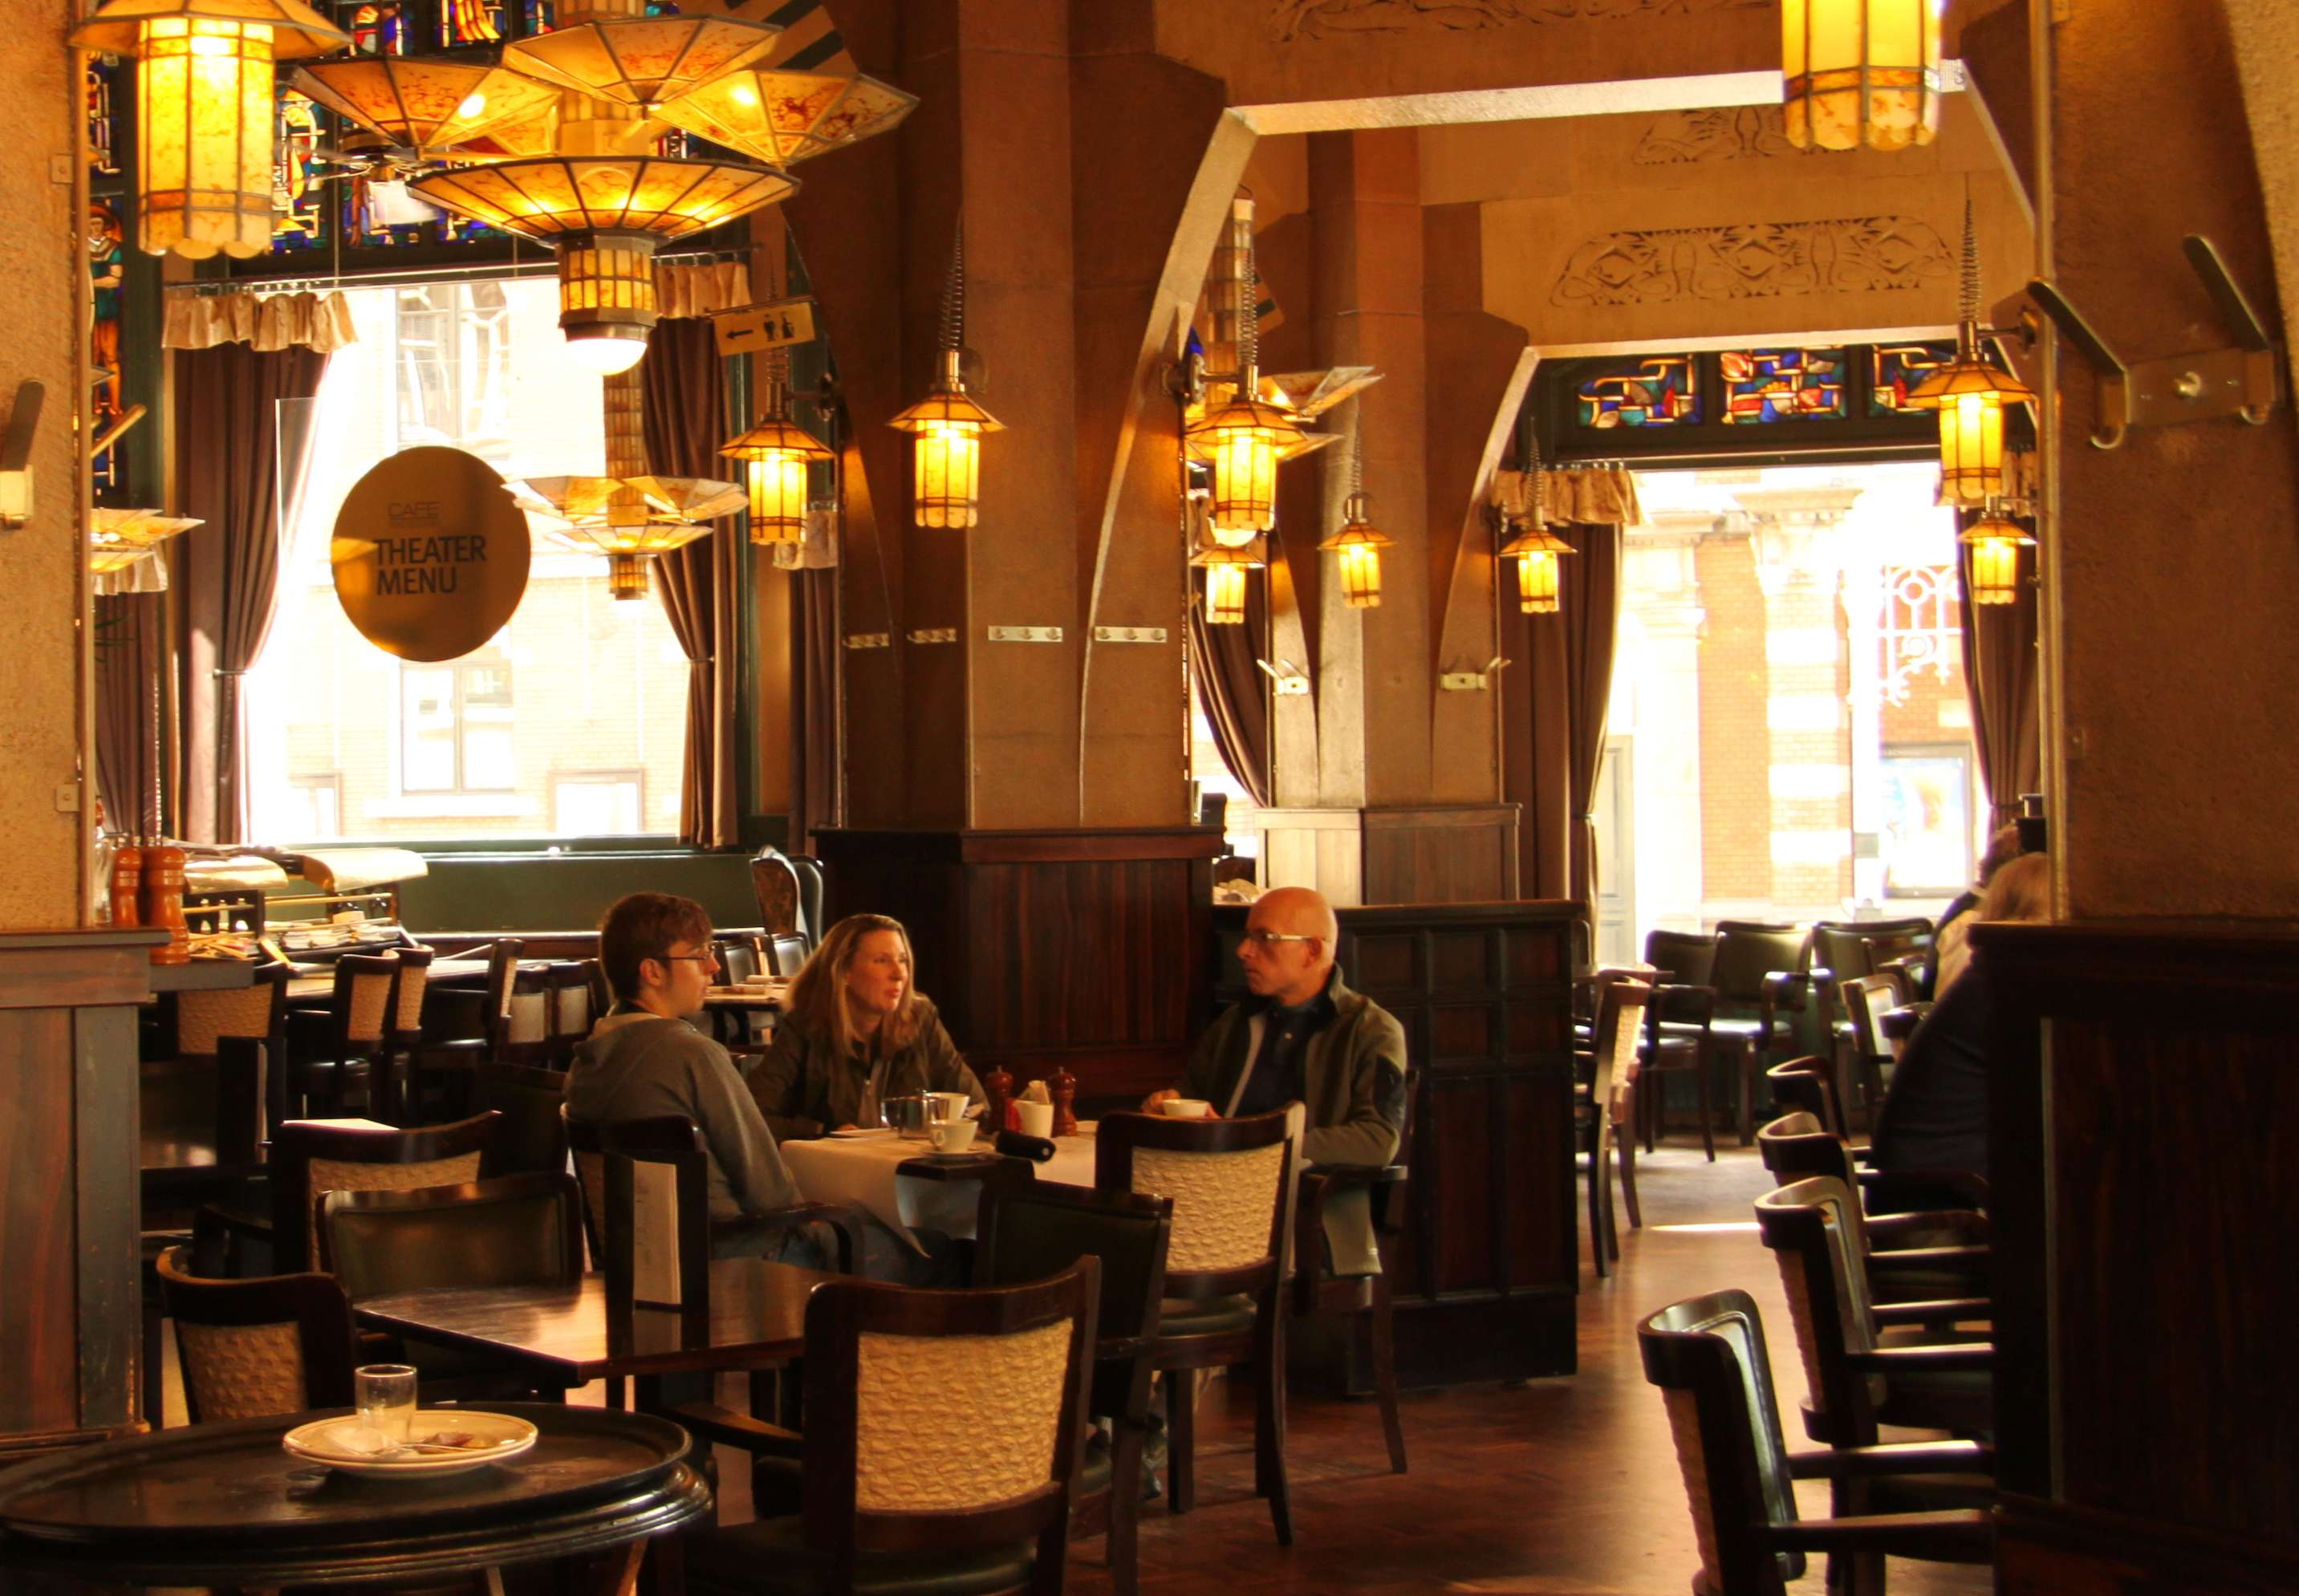 CAFE AMERICAIN – Amsterdam art deco | Richard Tulloch's LIFE ON THE ROAD